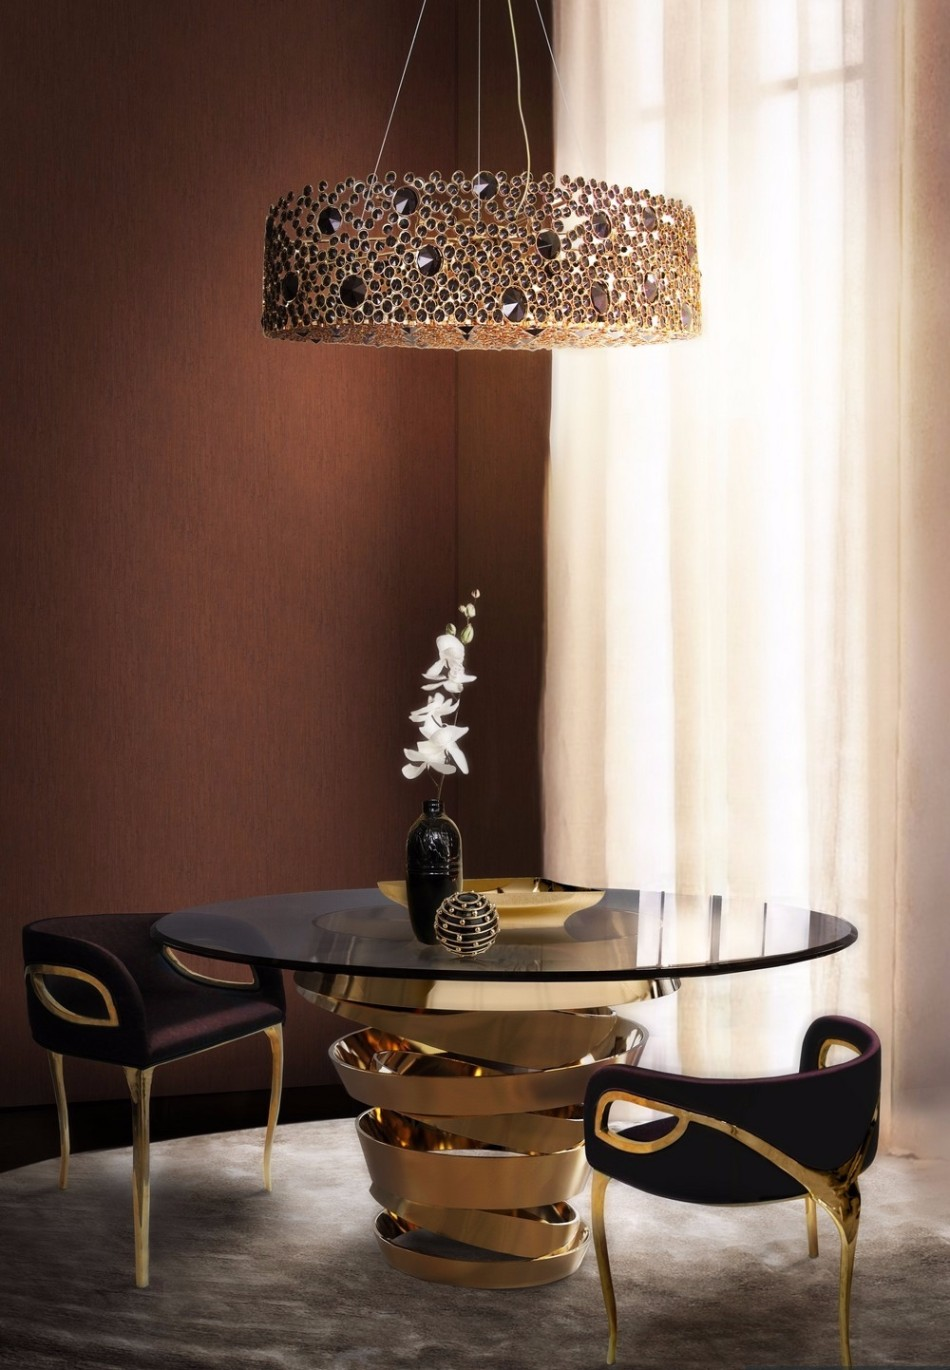 Dining room lighting trends 2018 barclaydouglas for Dining room 2014 trends